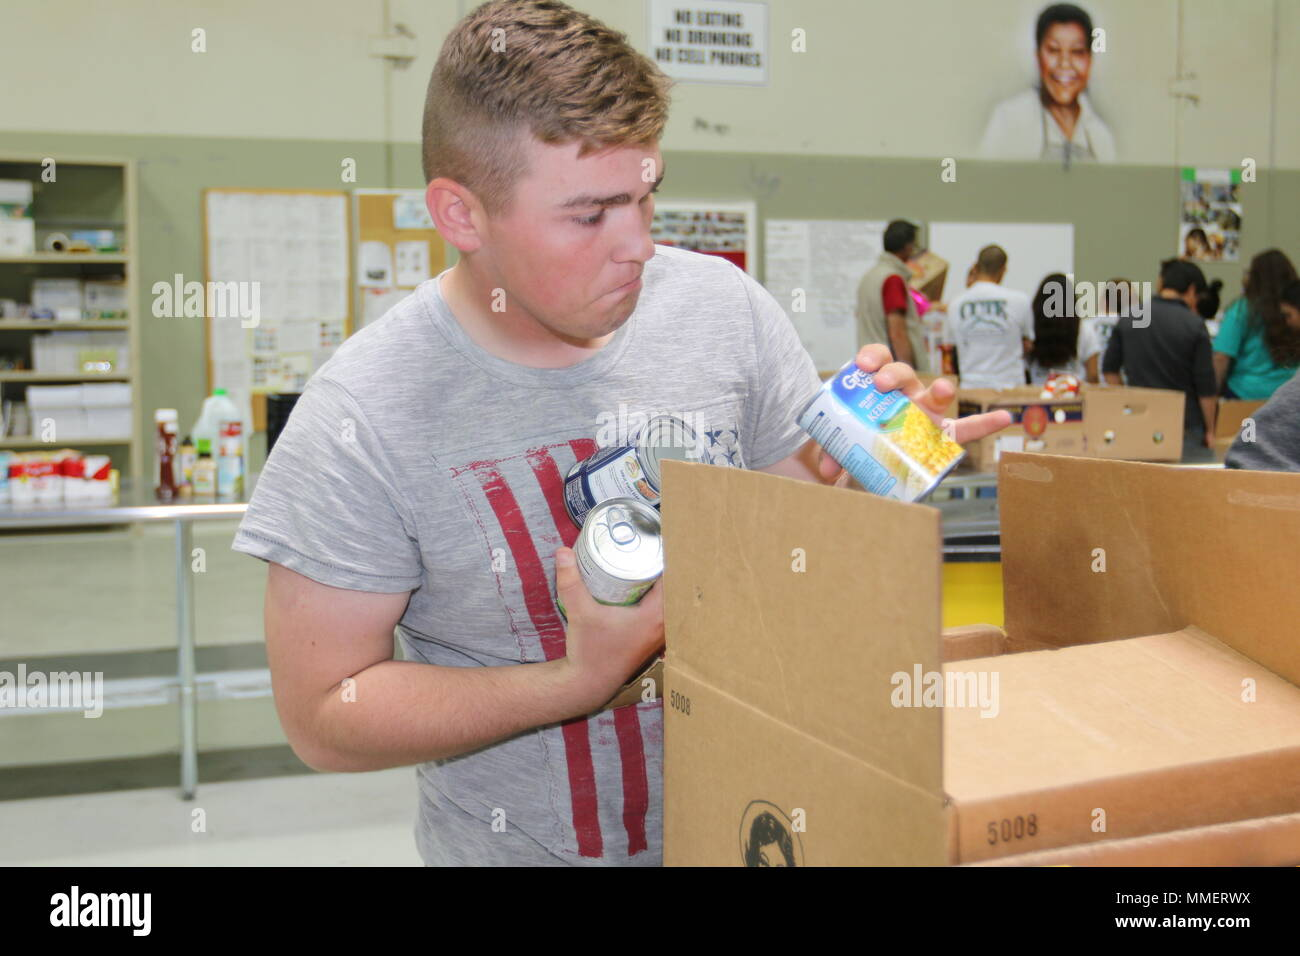 Pvt. Mason Landeros, combat medic specialist, 3rd Armored Brigade Combat Team, helps to sorts and packs food at El Pasoans Fighting Hunger Food Bank in El Paso, Texas, Oct. 28, 2017. Feels giving back to the community is better than sitting at home and playing video games. (U.S. Army Photo by Staff Sgt. Felicia Jagdatt) - Stock Image